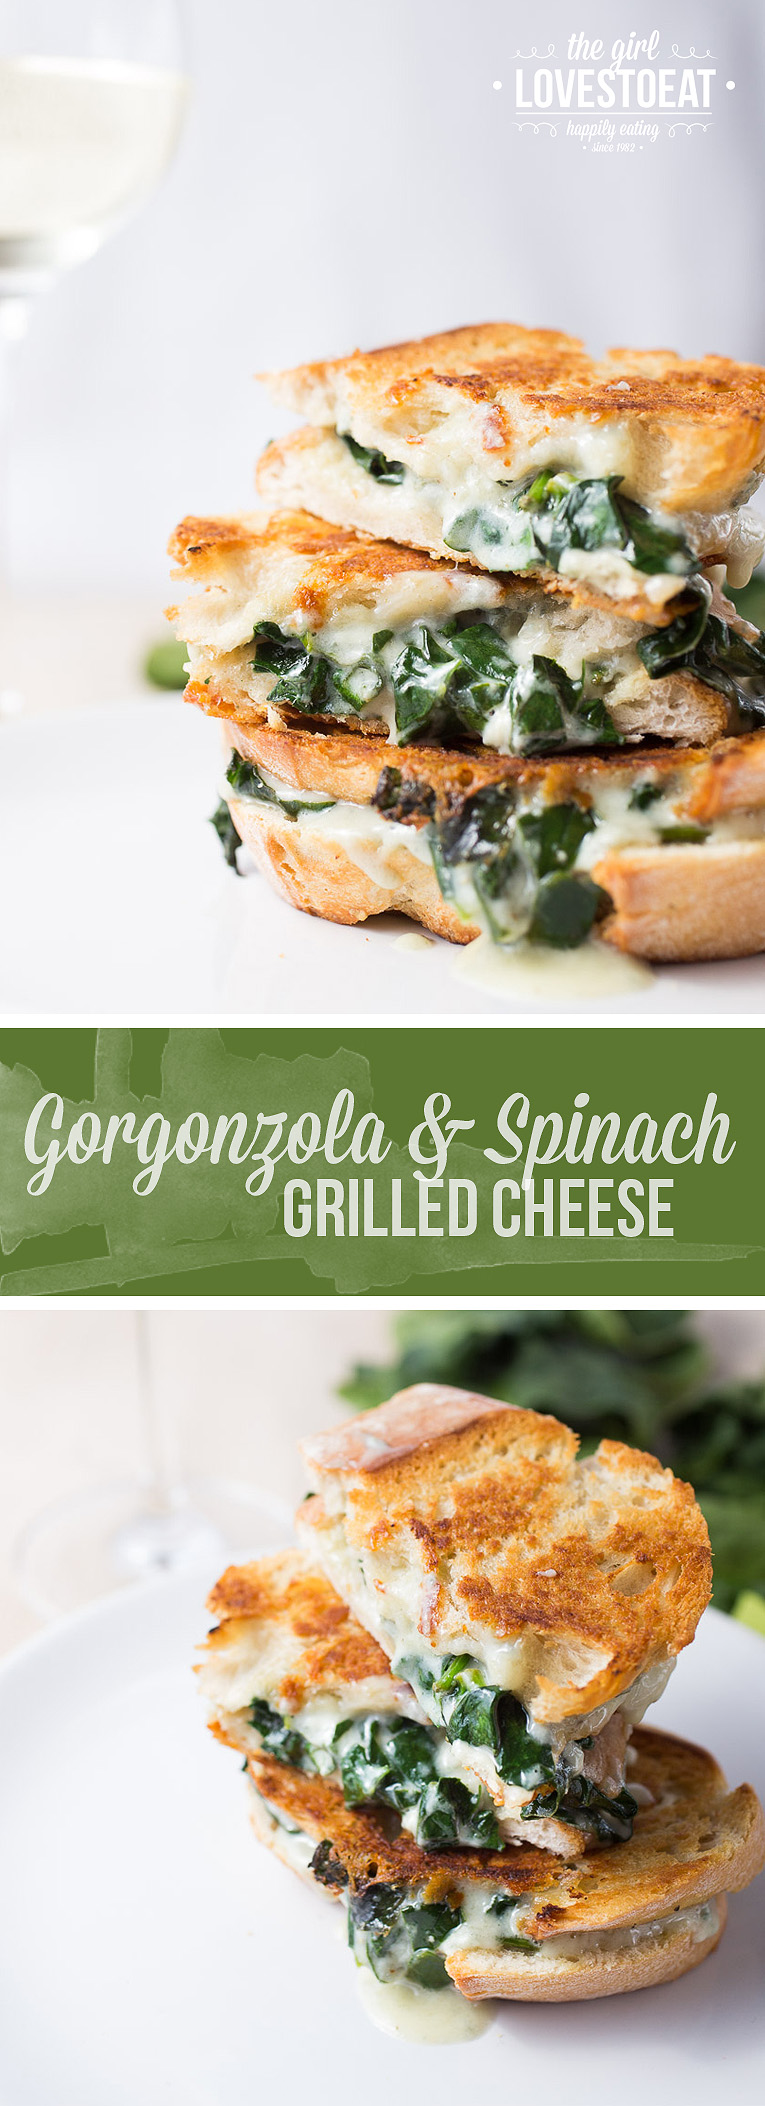 Gorgonzola and spinach grilled cheese